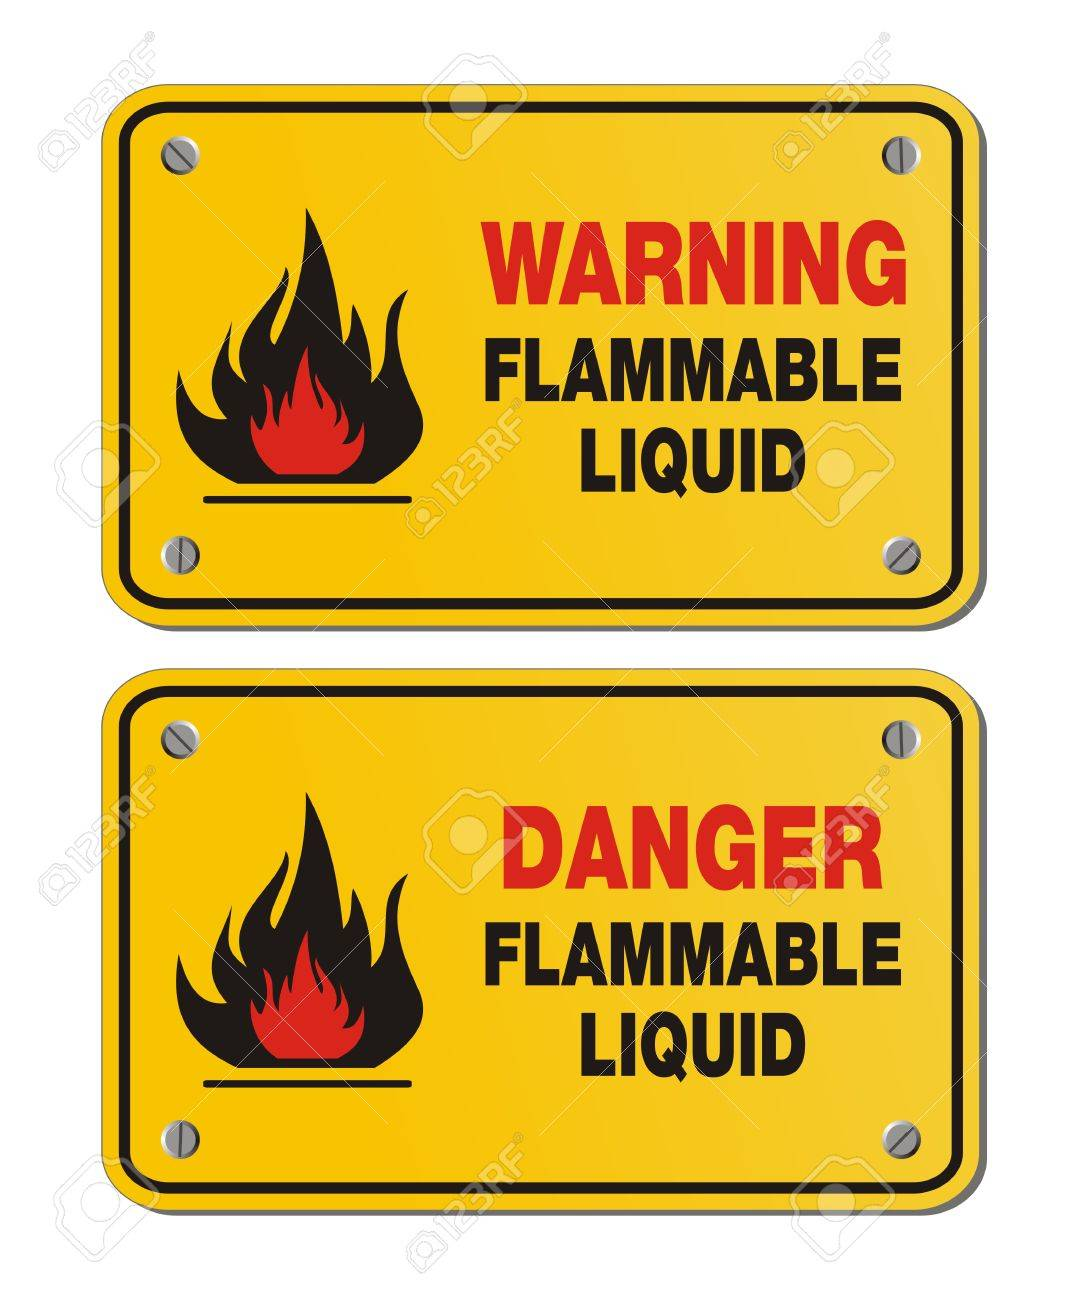 rectangle yellow signs - warning and danger flammable liquid Stock Vector - 24156366